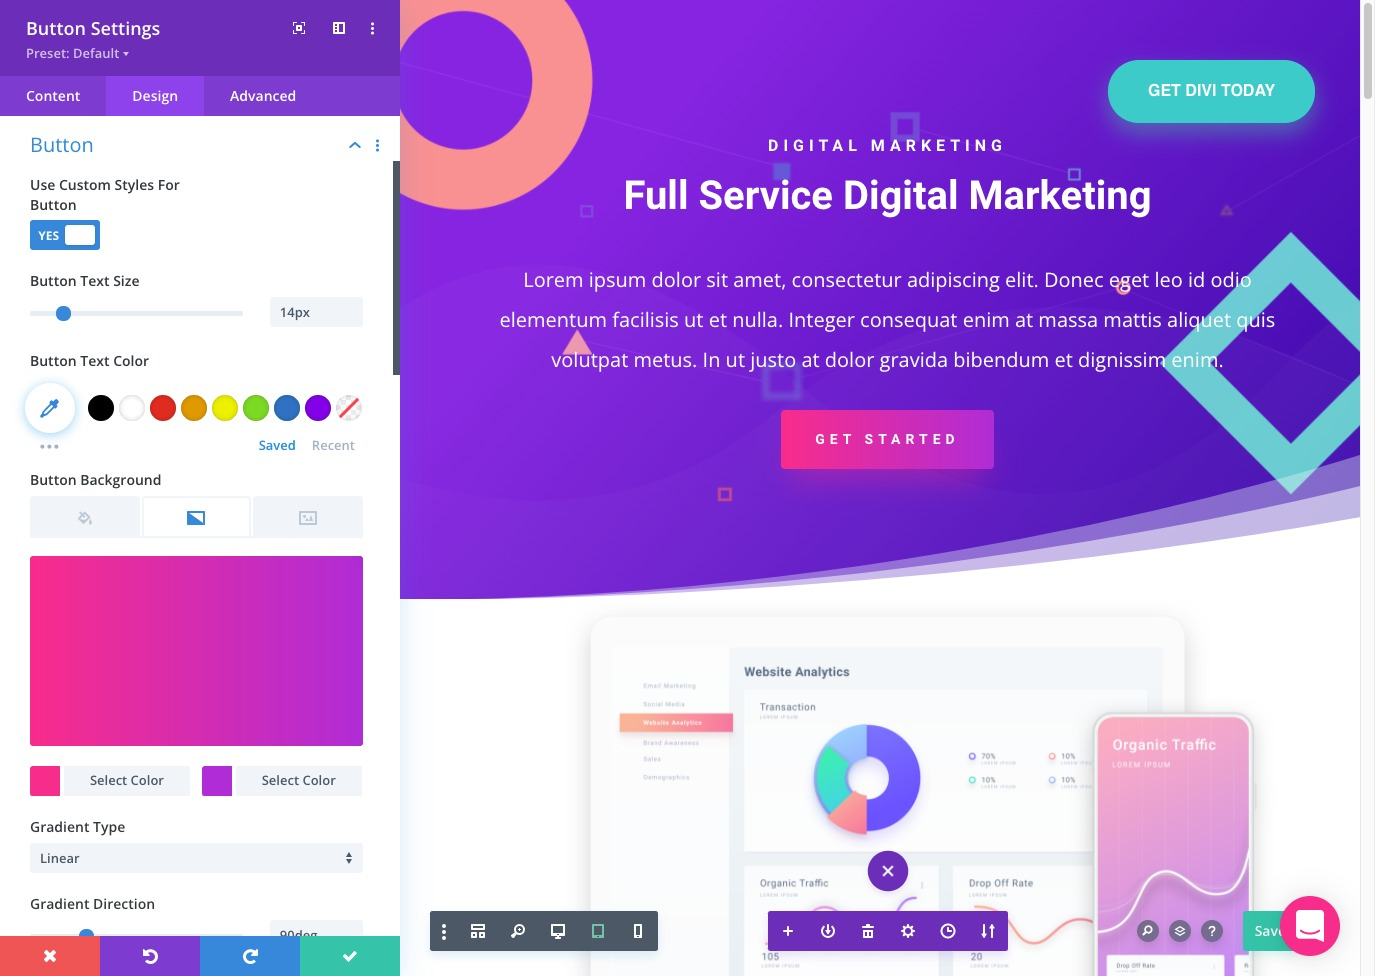 Try Divi for free online